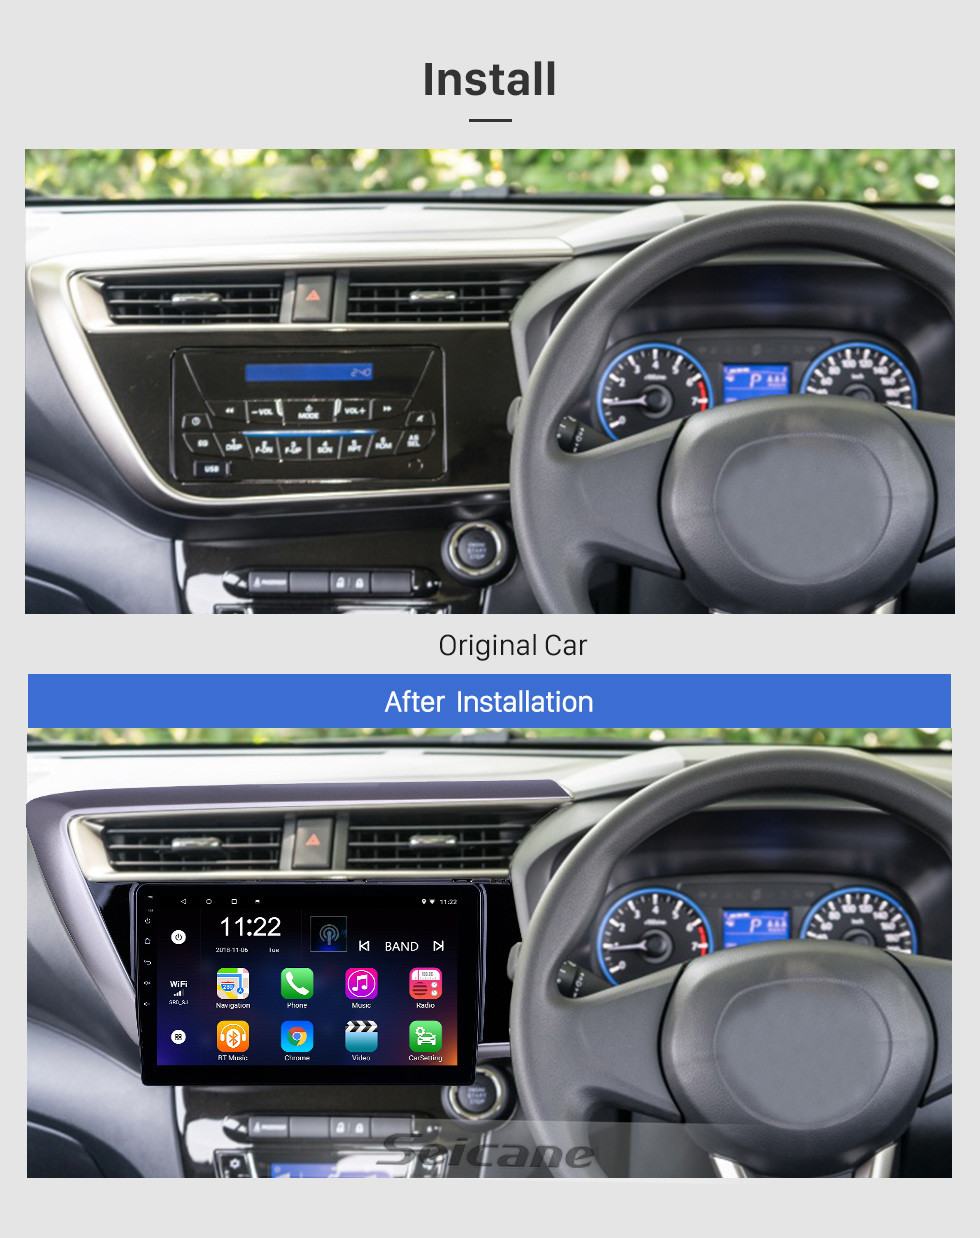 Seicane 10.1 inch Android 10.0 GPS Navigation Radio for 2018 Proton Myvi With HD Touchscreen Bluetooth support Carplay TPMS Digital TV